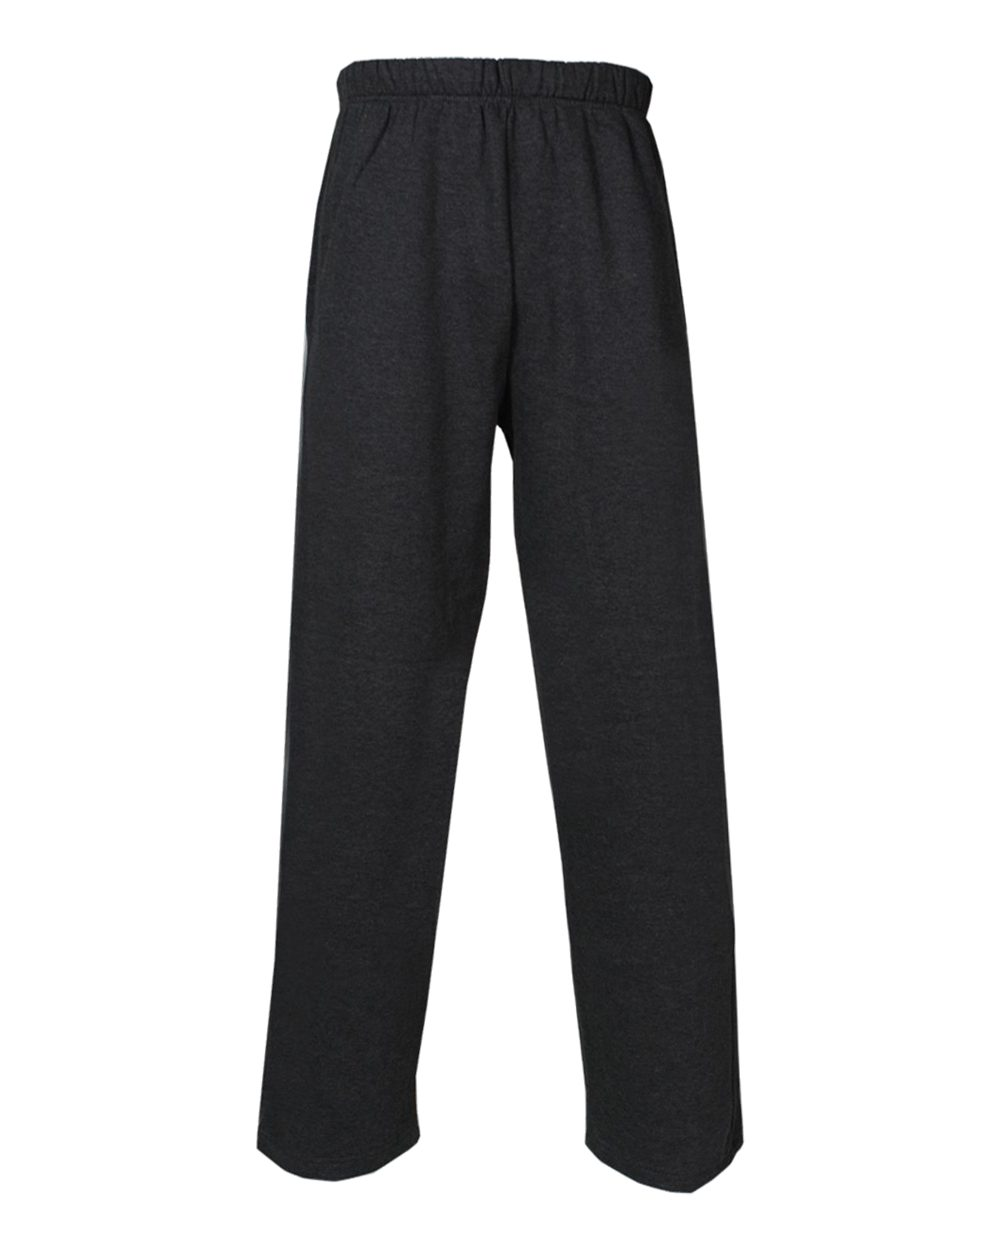 Open Bottom Fleece Pant - Charcoal